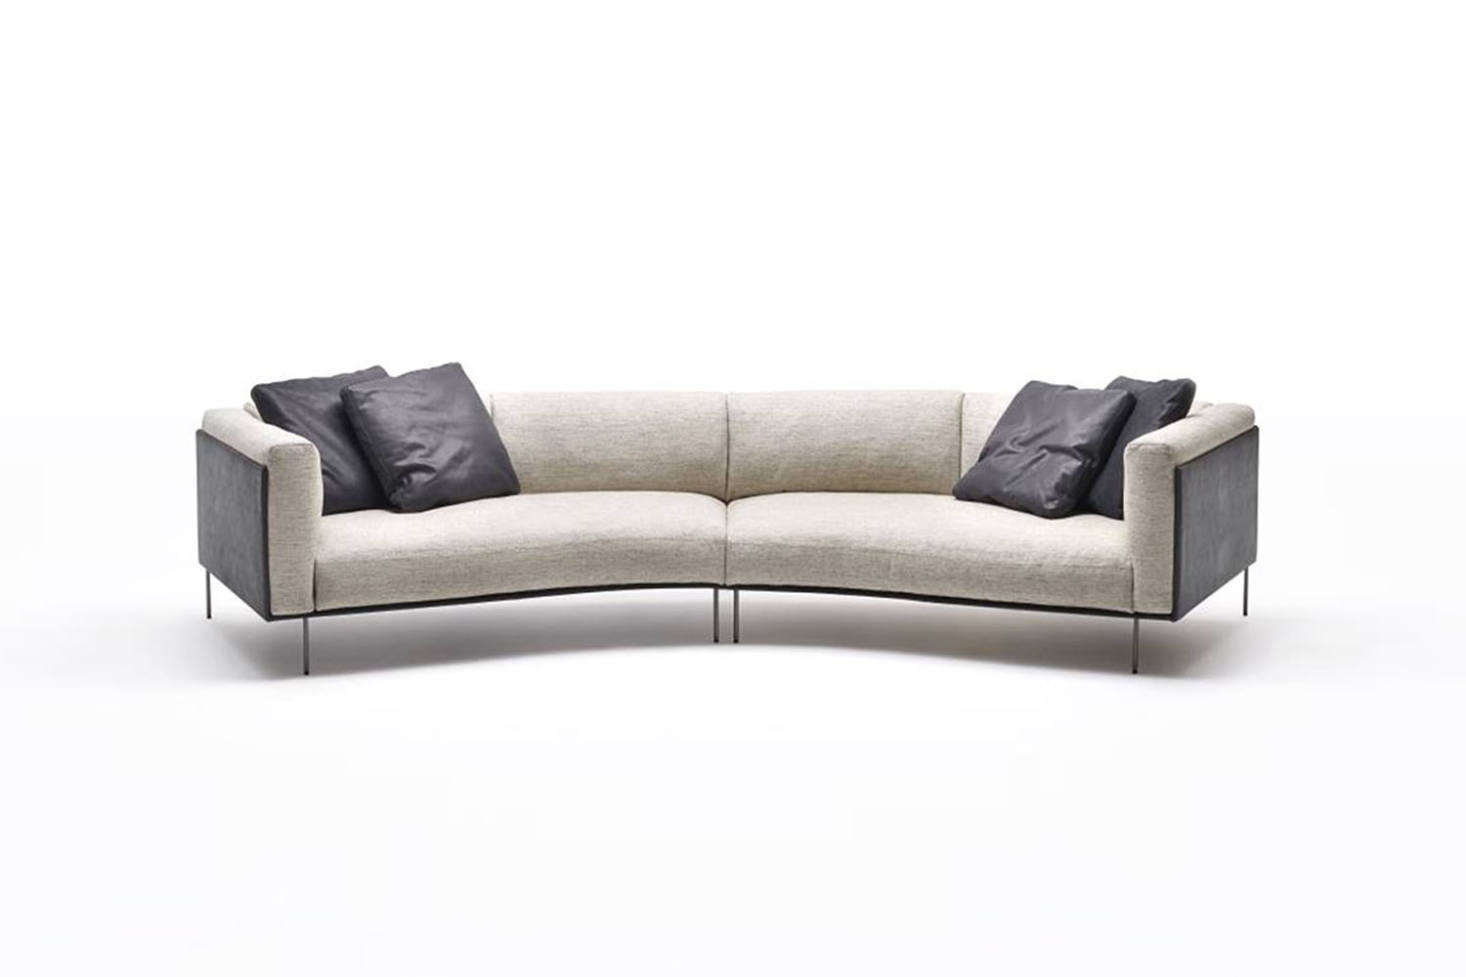 The Piero Lissoni Rod Bean Sofa designed for Living Divani, is a curved style that sits on a minimal frame made of lacquered, drawn tubular steel and stainless steel feet. The sofa is £,954 at TwentyTwentyOne.